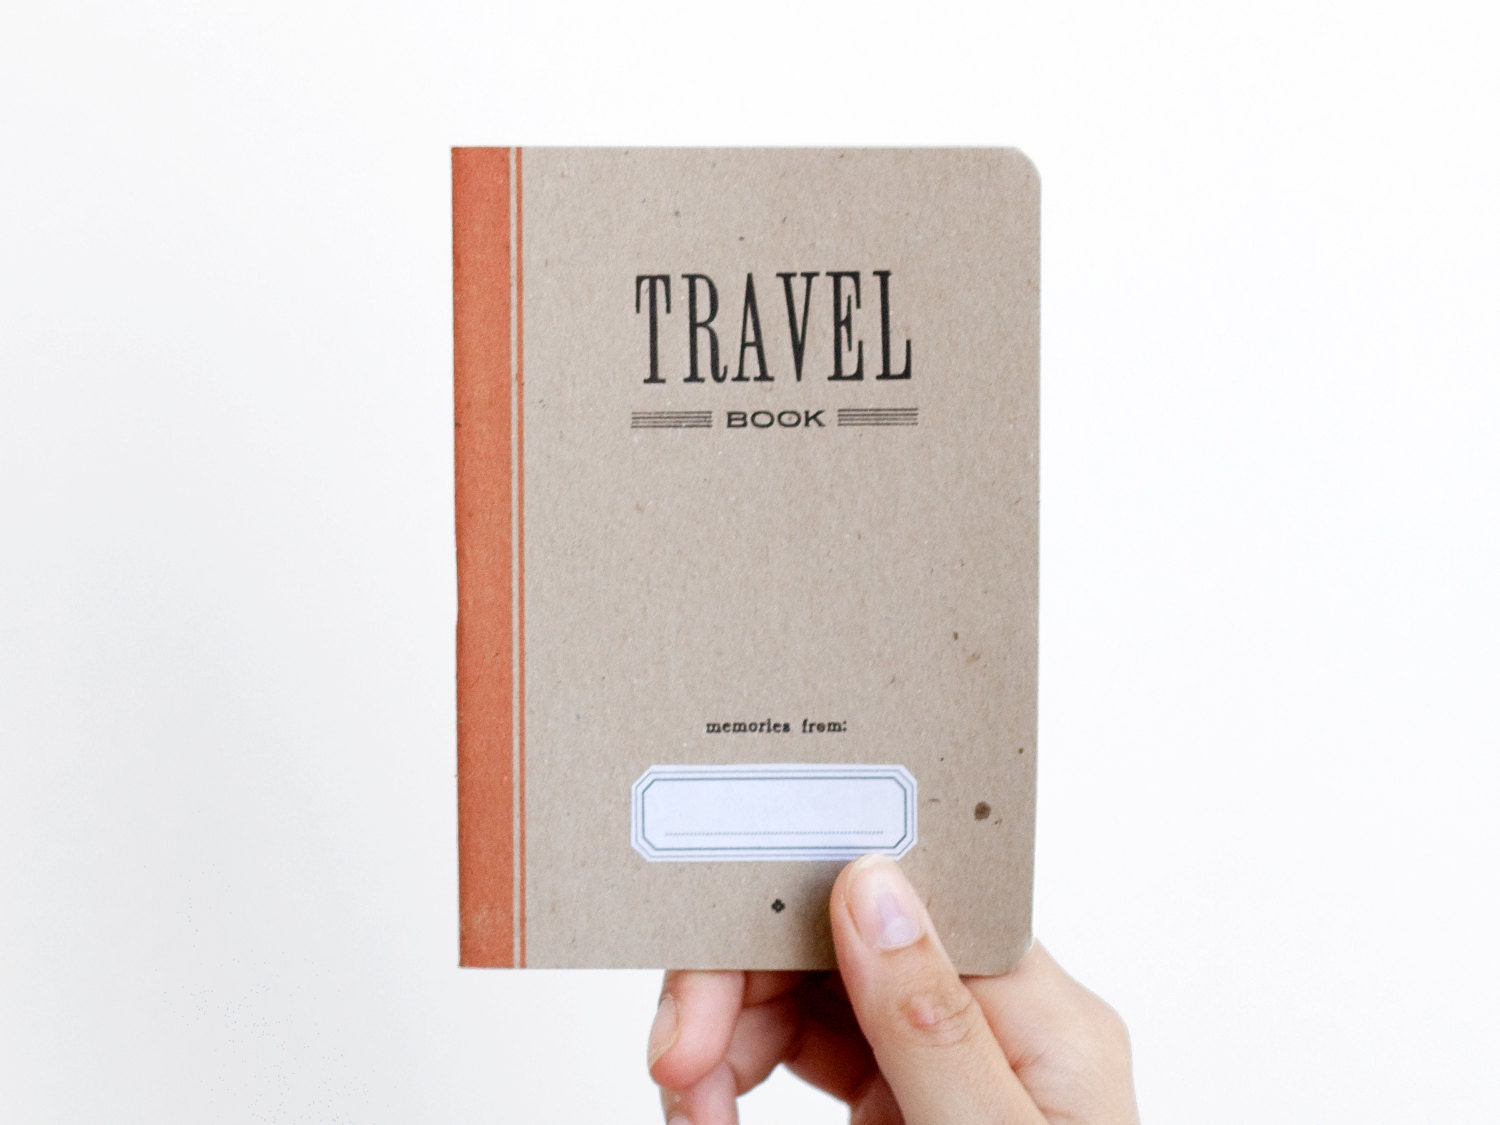 TRAVEL BOOK - ocre - letterpress printed notebook - vintage design 003 - ARMINHO